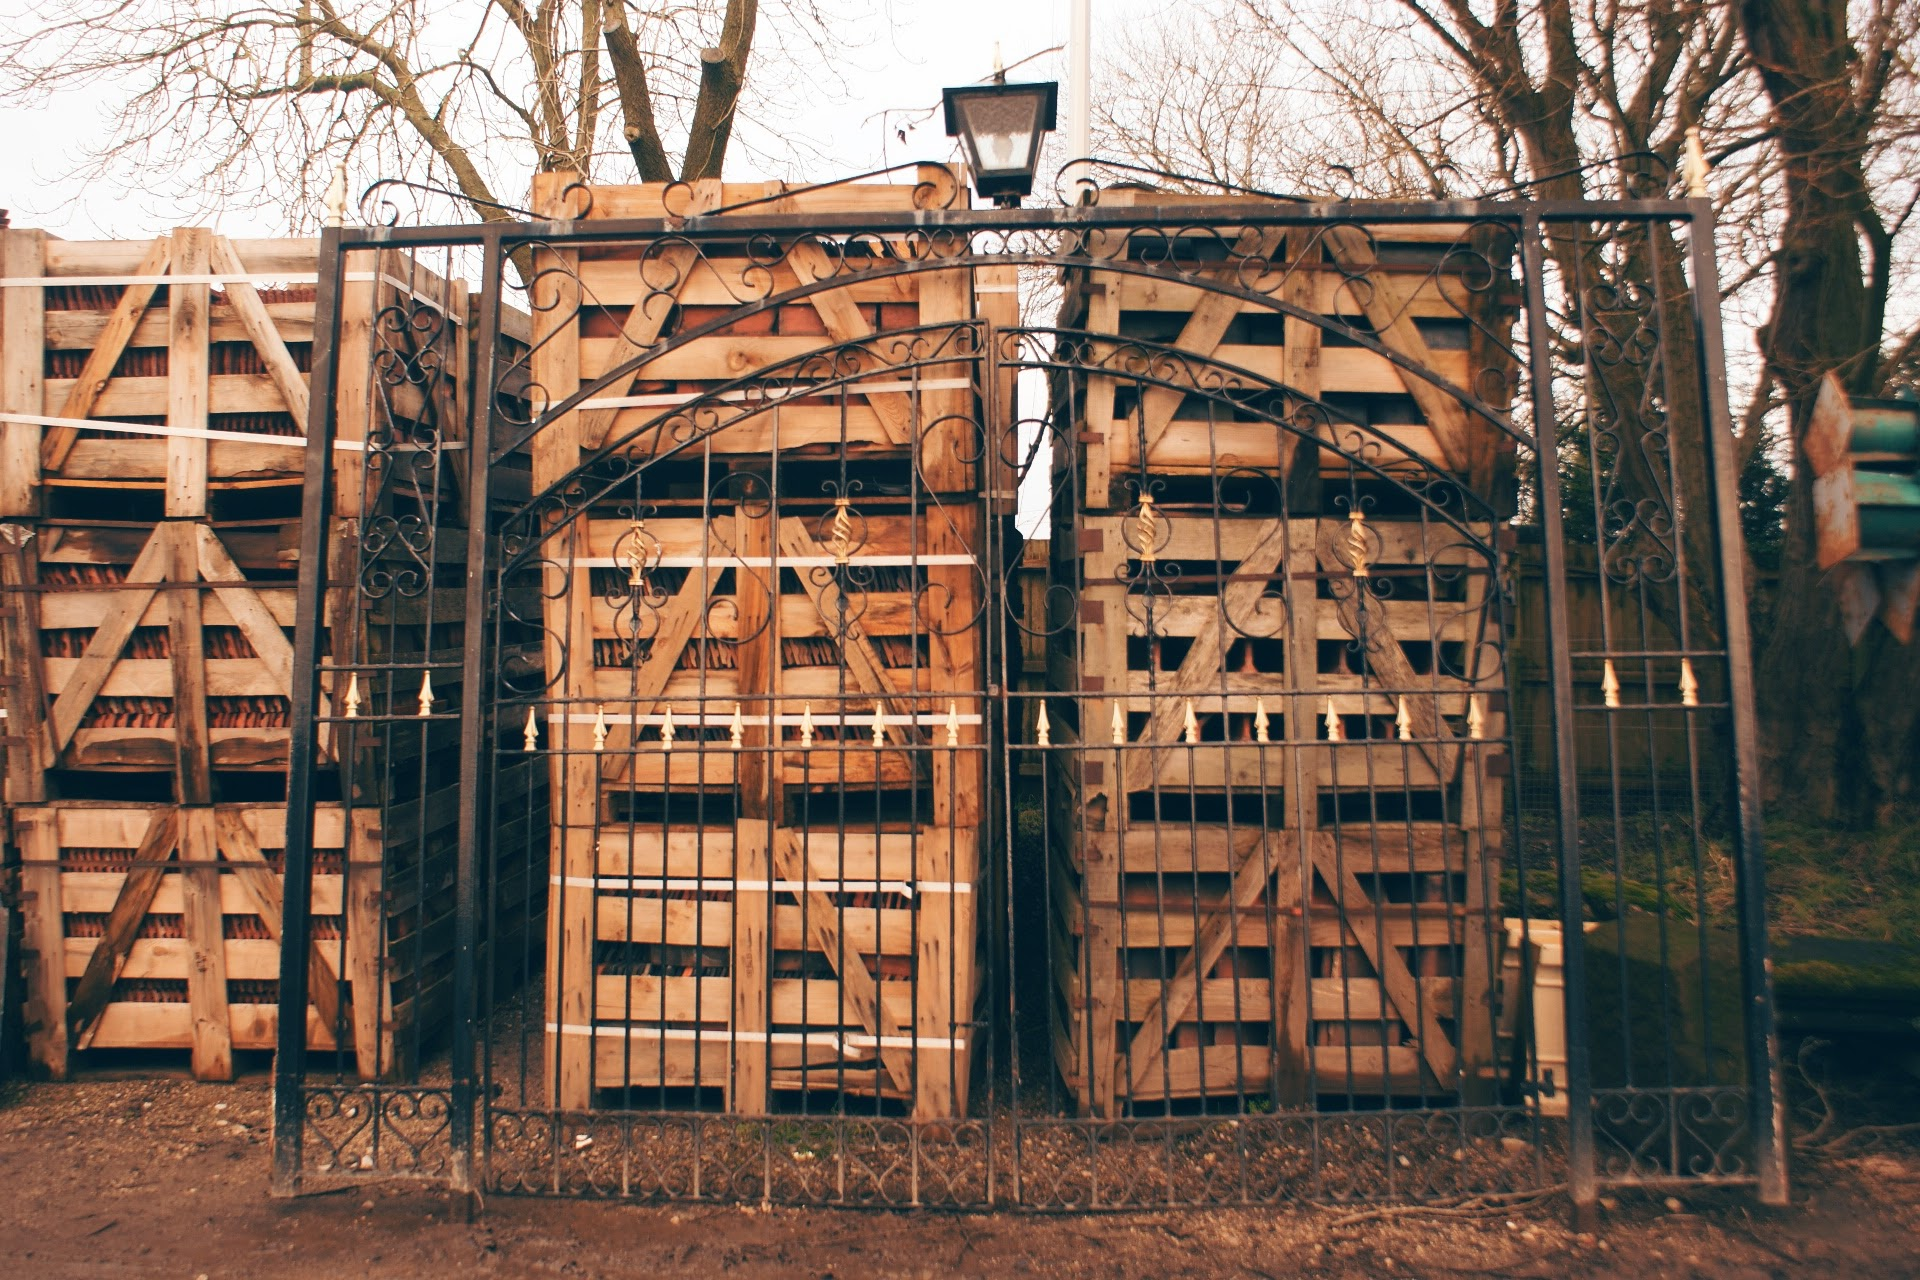 fantastically-big-gates-we-also-have-medium-and-small-reclaimed-gates-and-railings